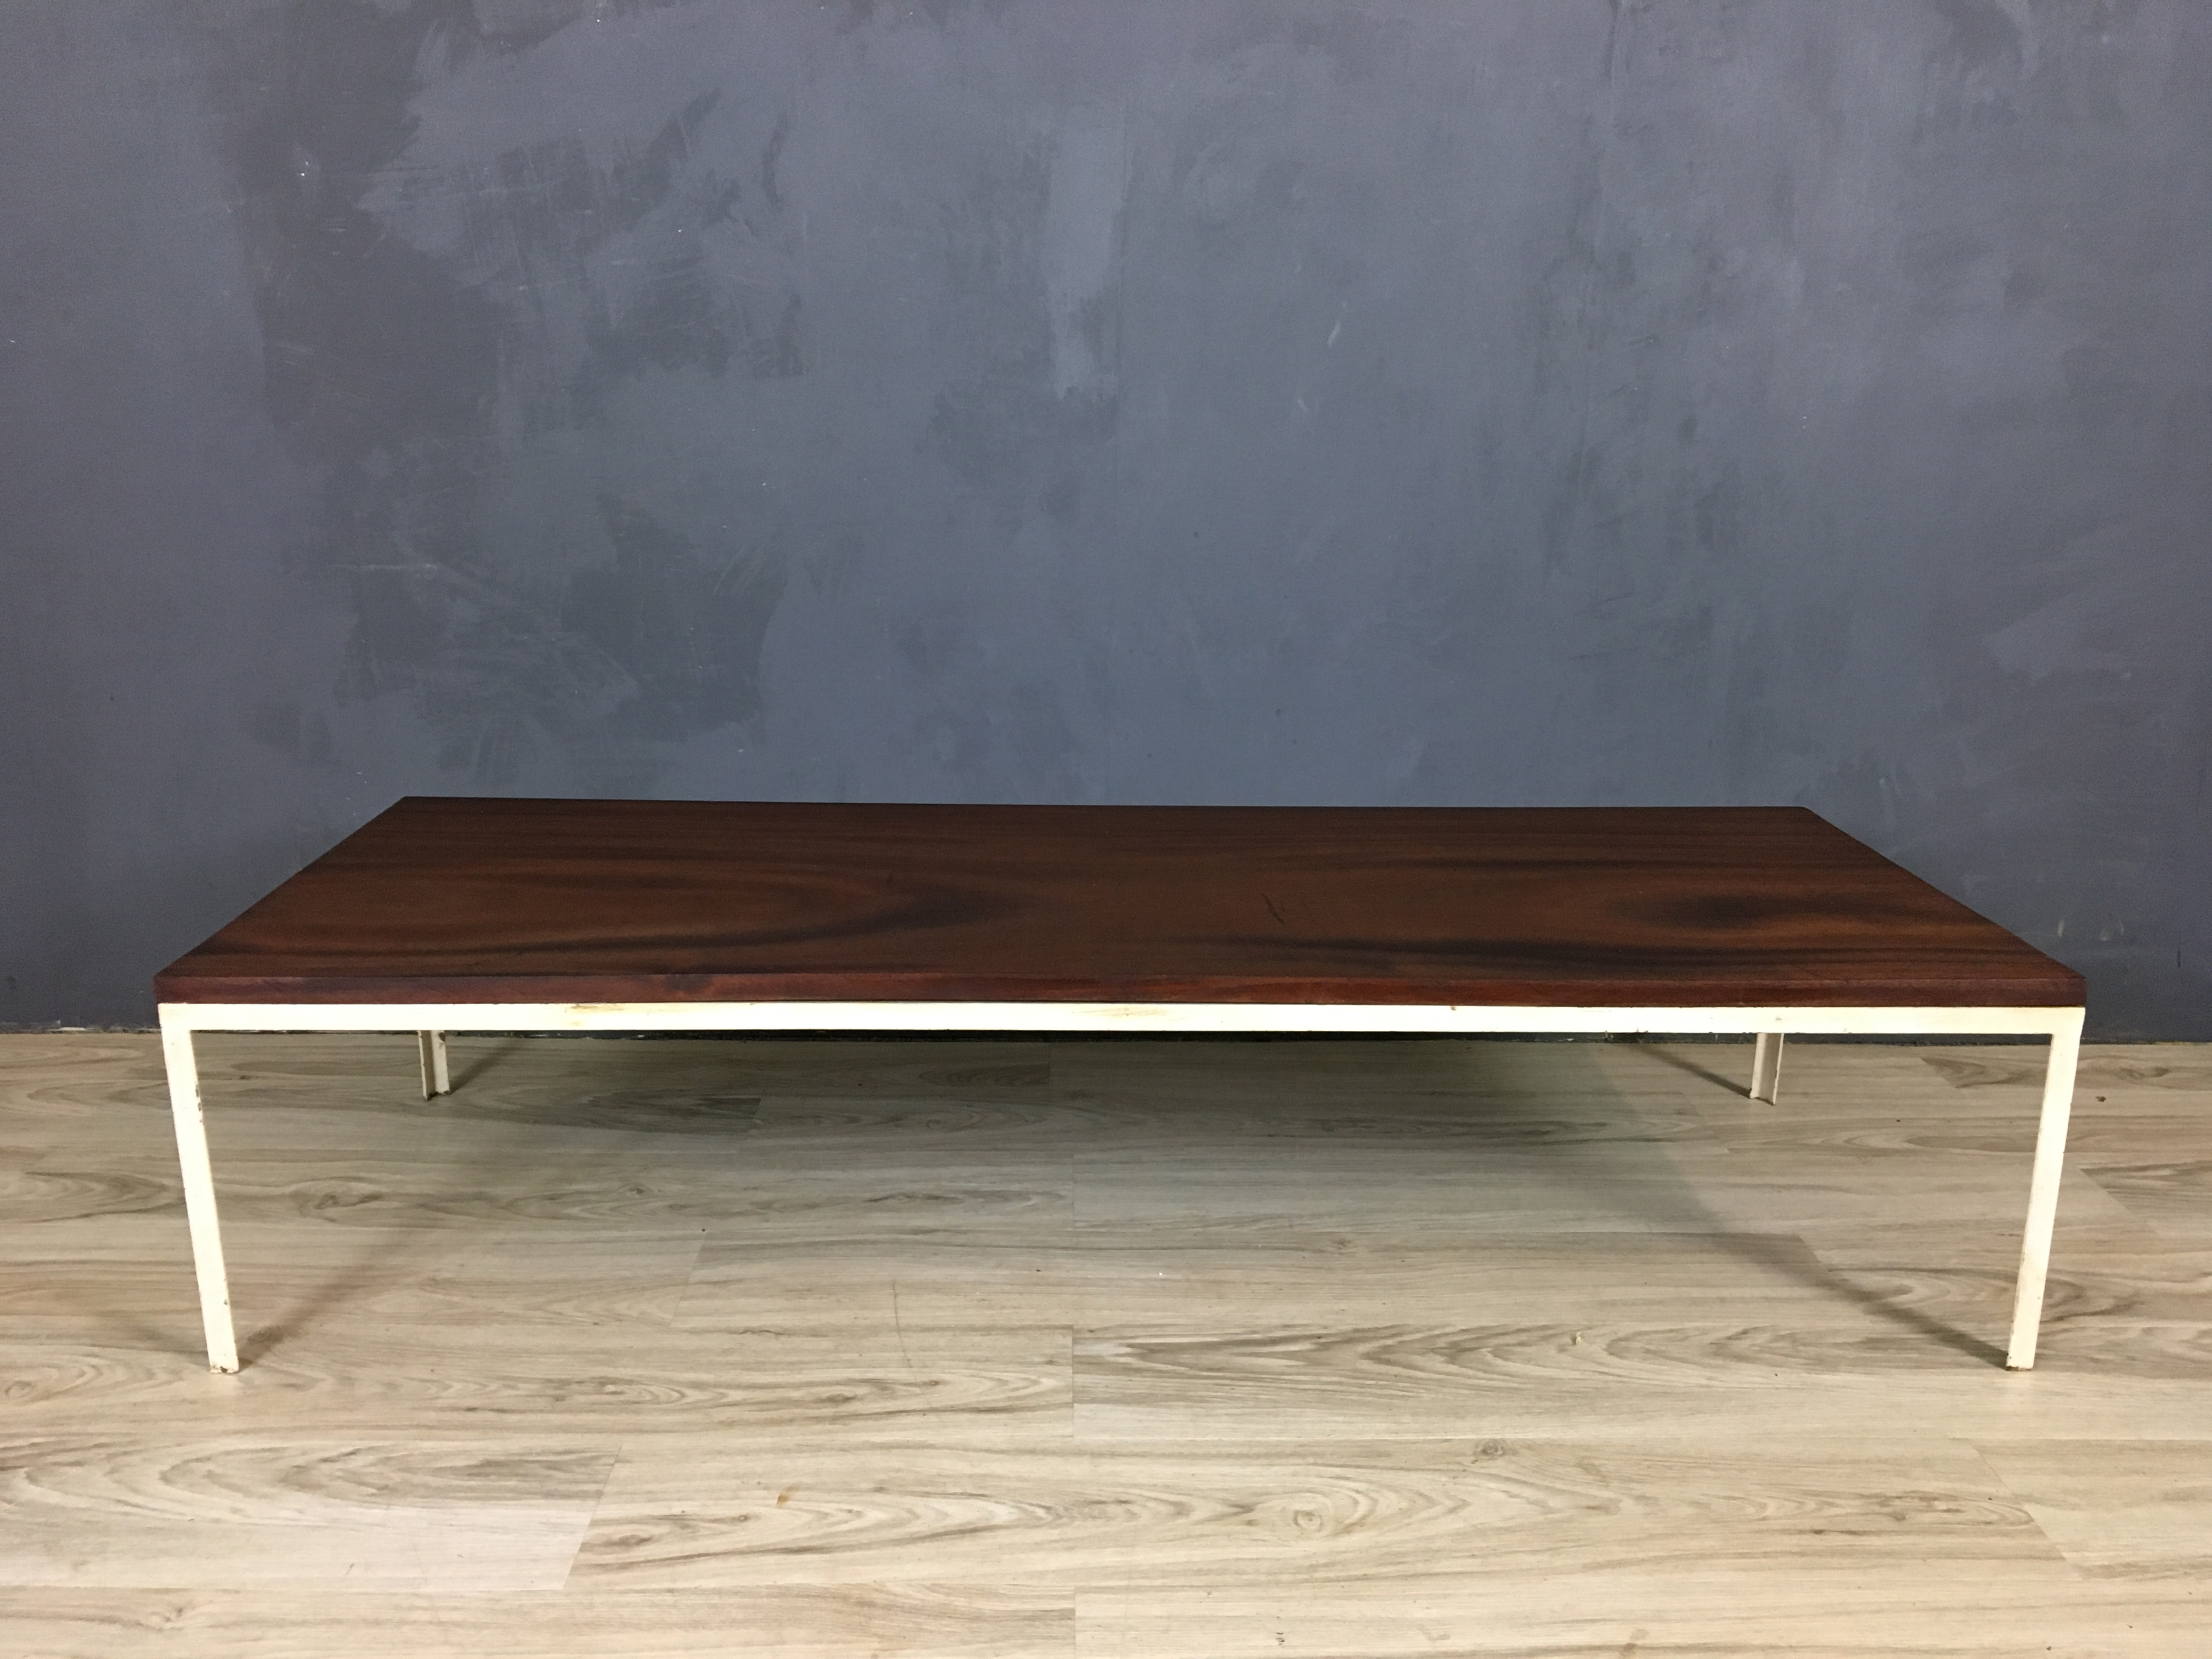 SALE - Mid Century Walnut Coffee Table with Metal Frame